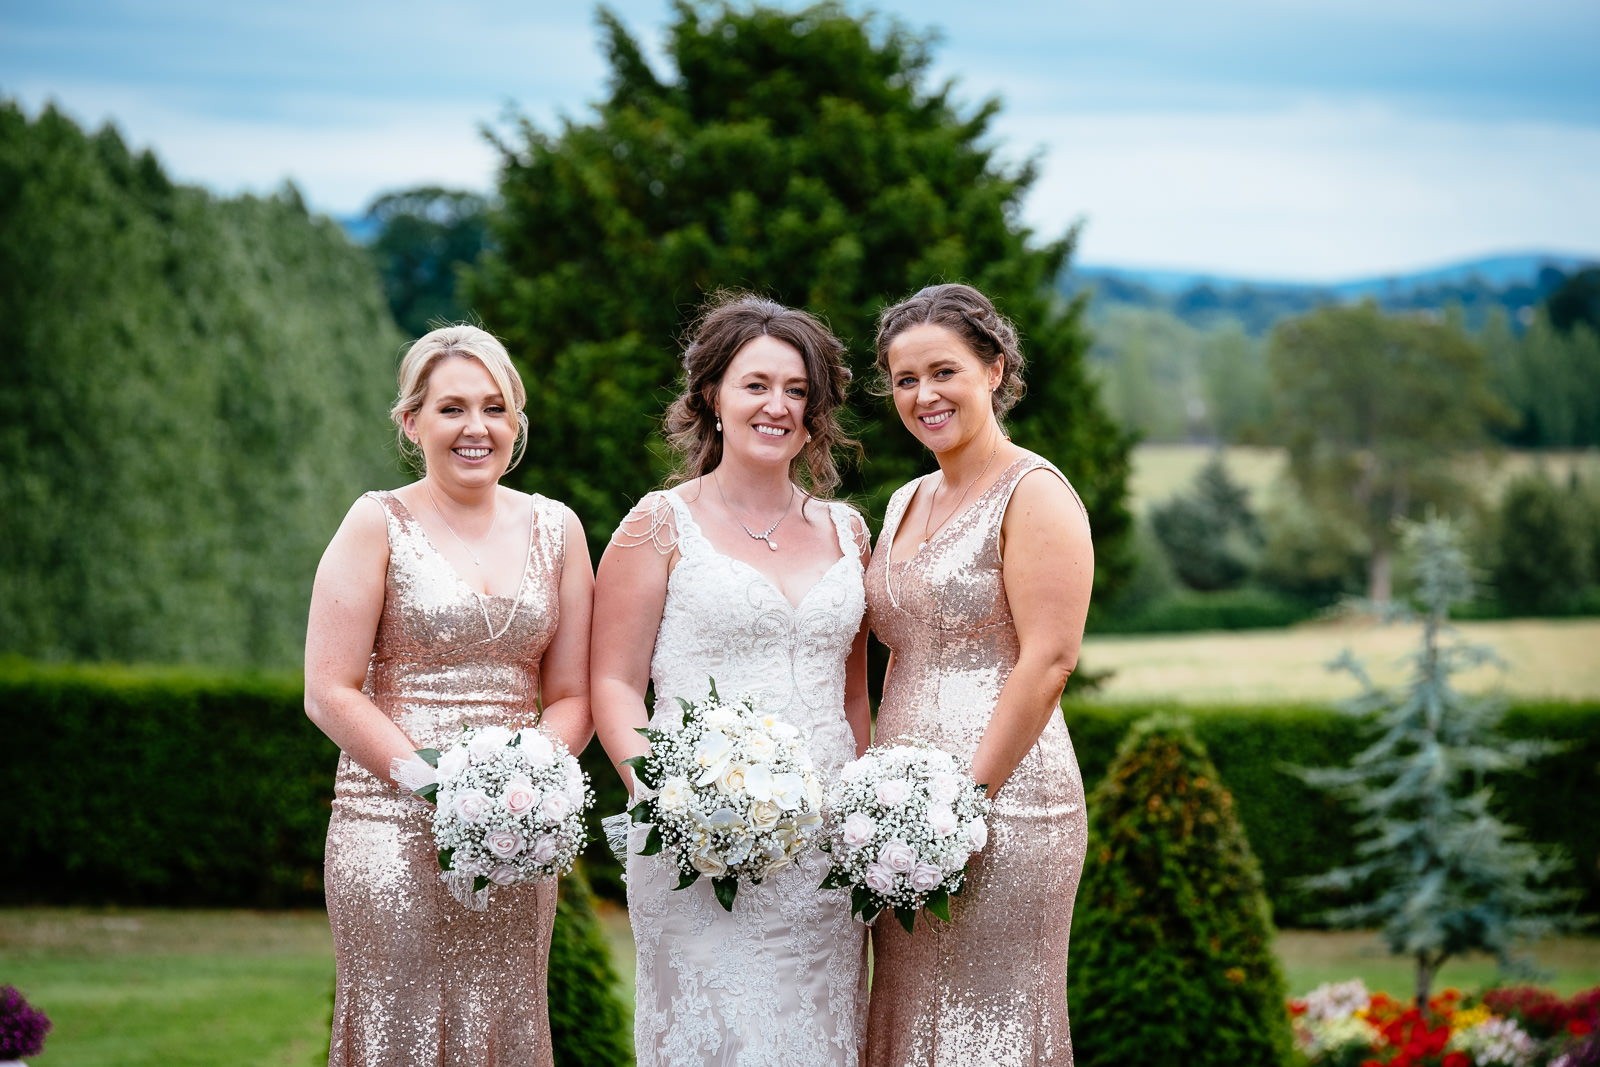 palmerstown estate wedding photographer kildare 1156